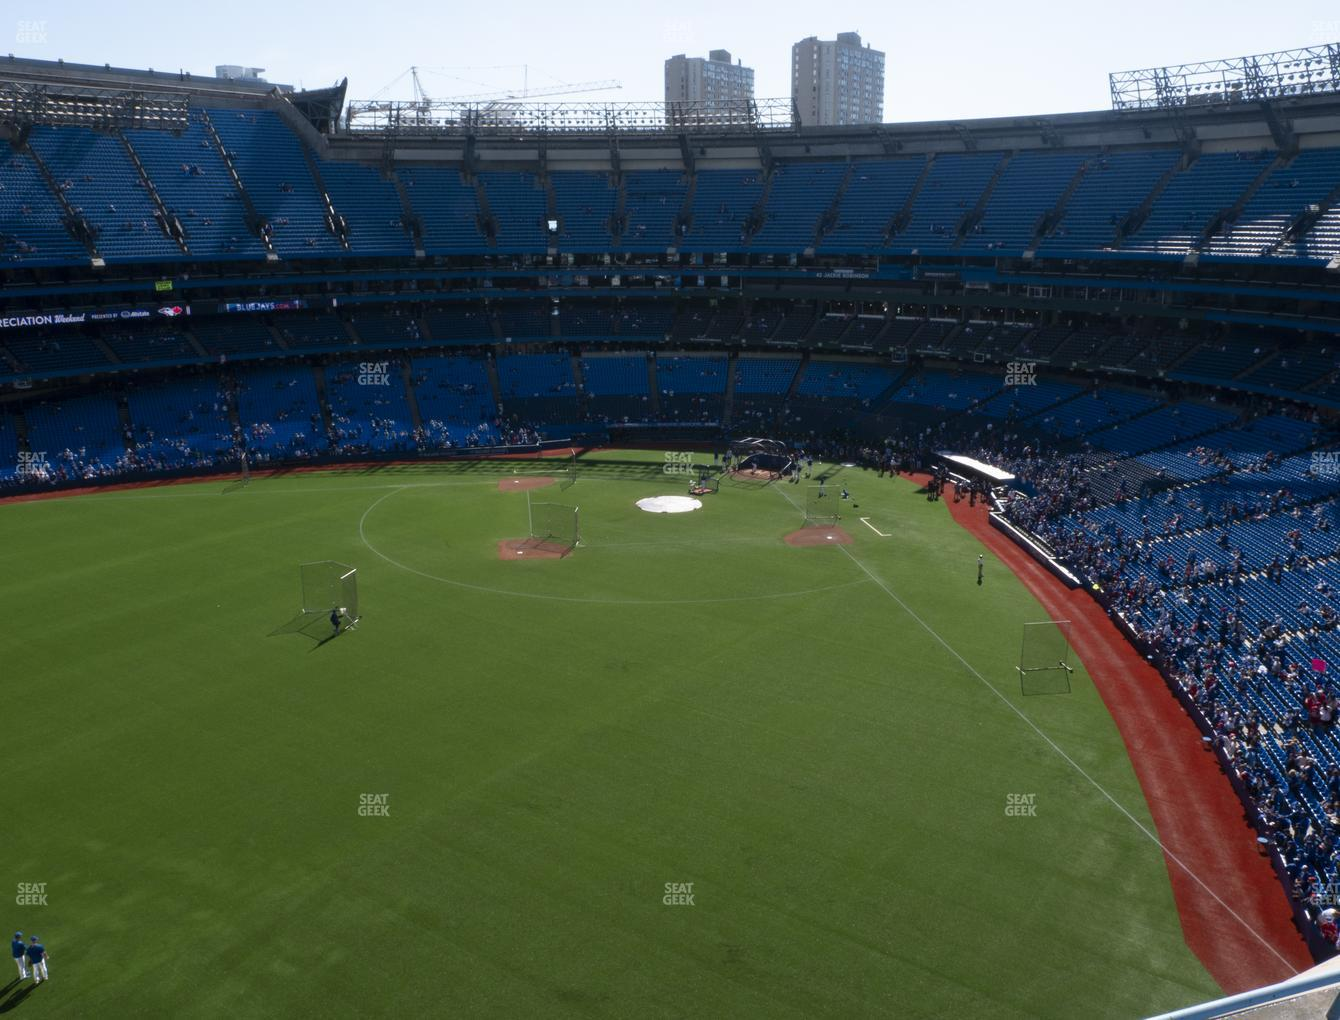 Toronto Blue Jays at Rogers Centre Section 542 R View